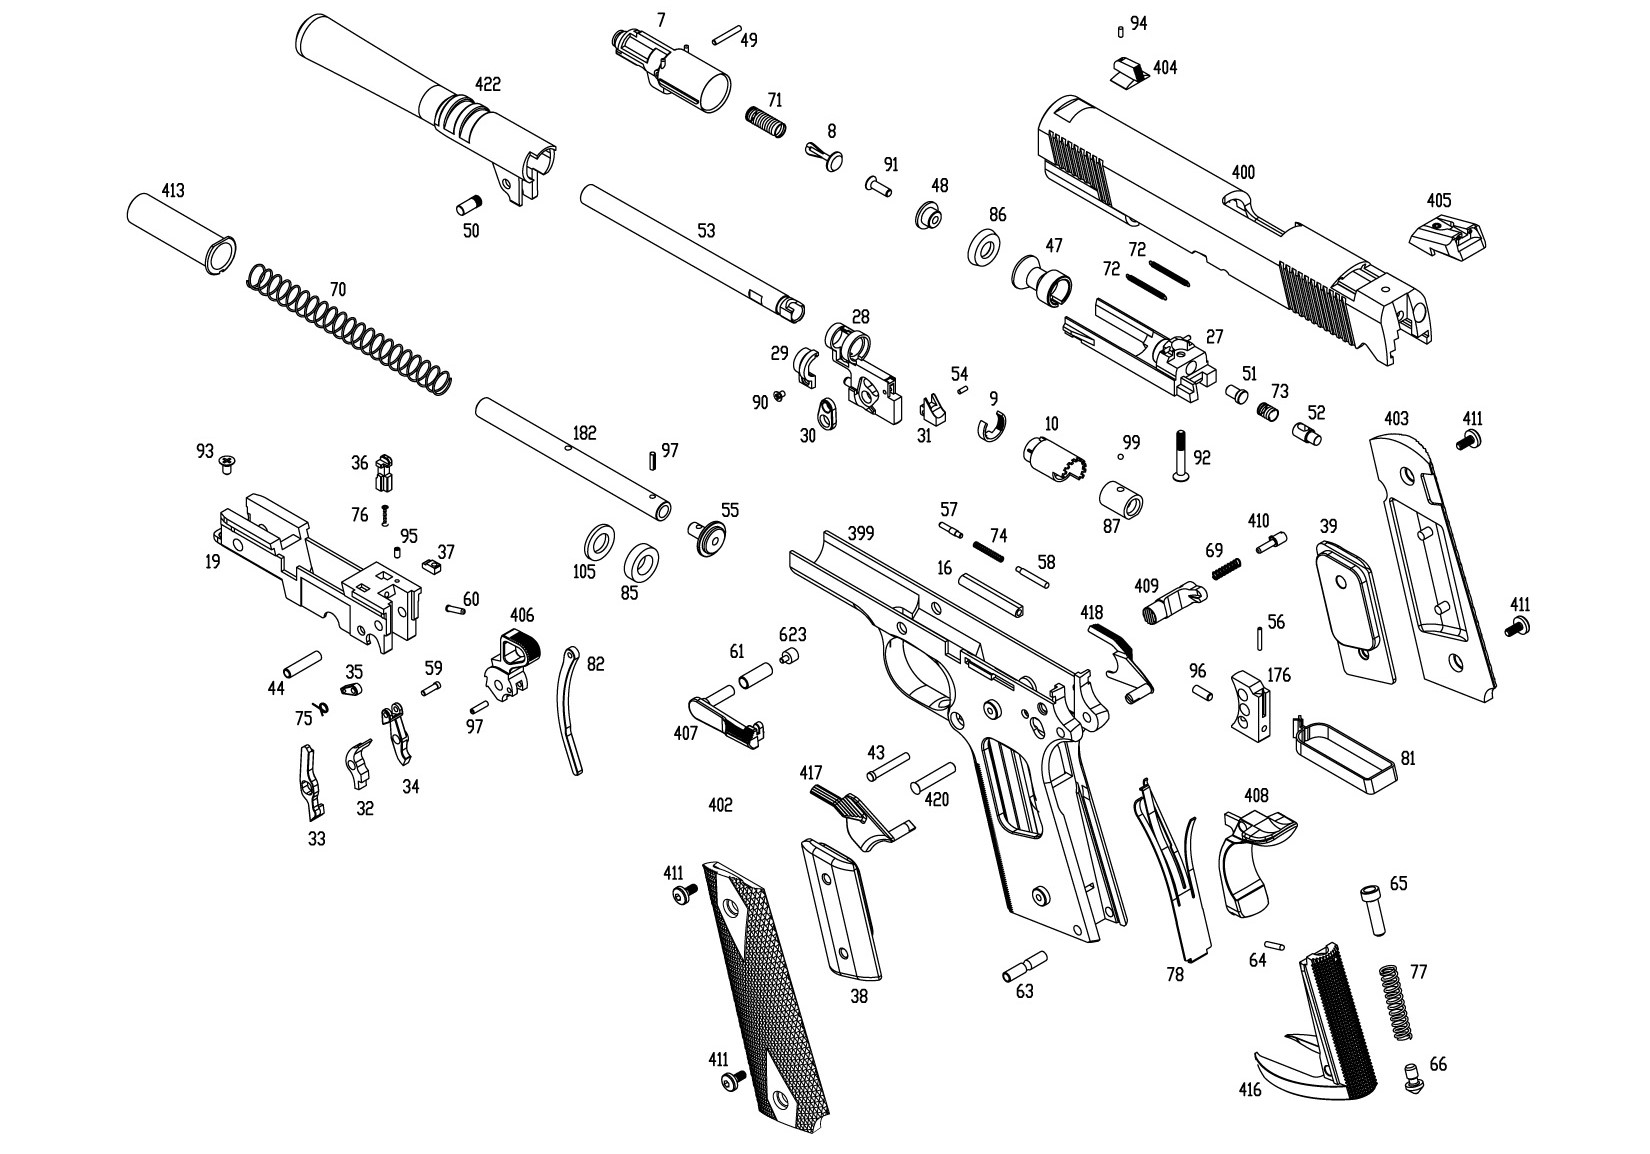 The .45 caliber 1911 is a favorite handgun, used in every U.S. conflict in the last 100 years. But look at the many parts!